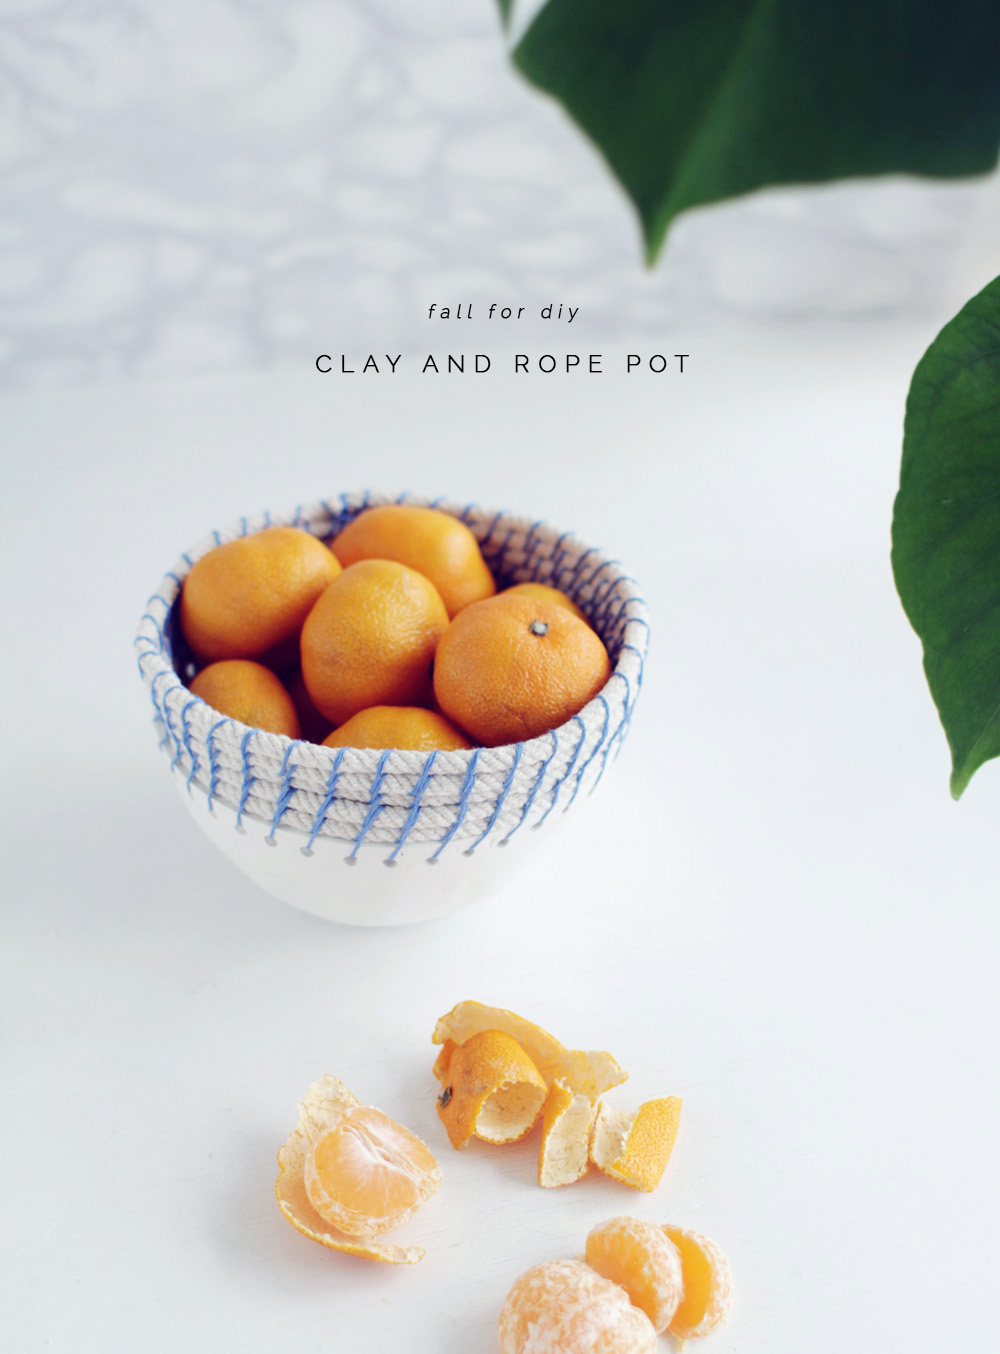 Fall For DIY Clay and Rope Pot tutorial